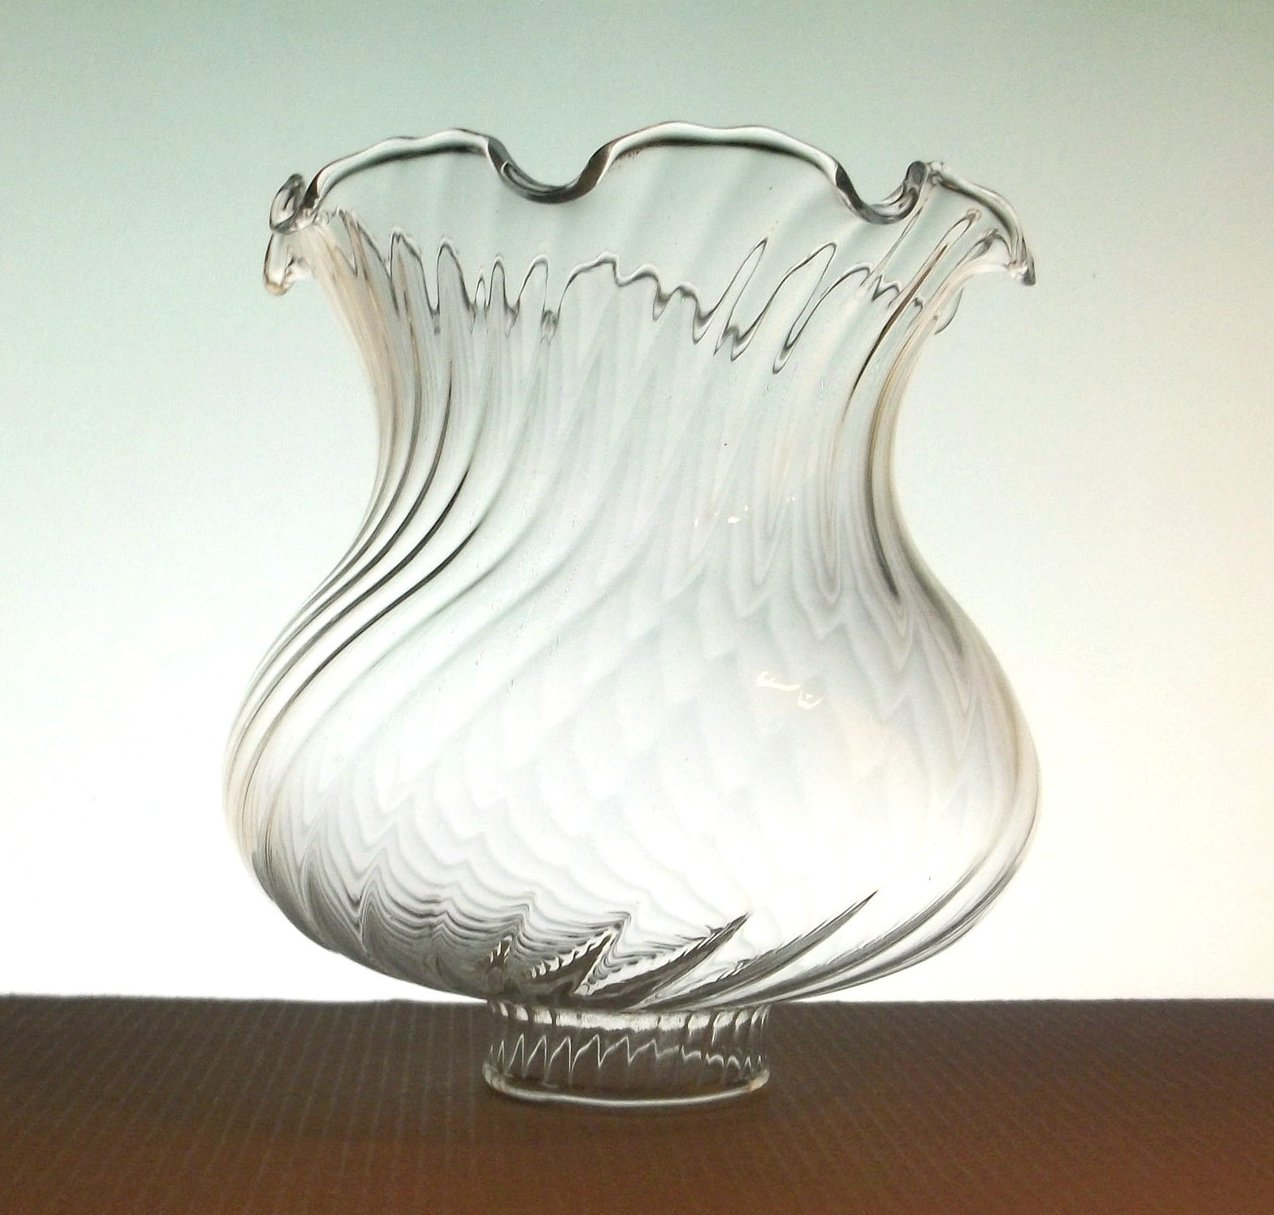 glass lamp shade 1 5 8 inch fitter x 5 inches ruffled swirls clear oos. Black Bedroom Furniture Sets. Home Design Ideas